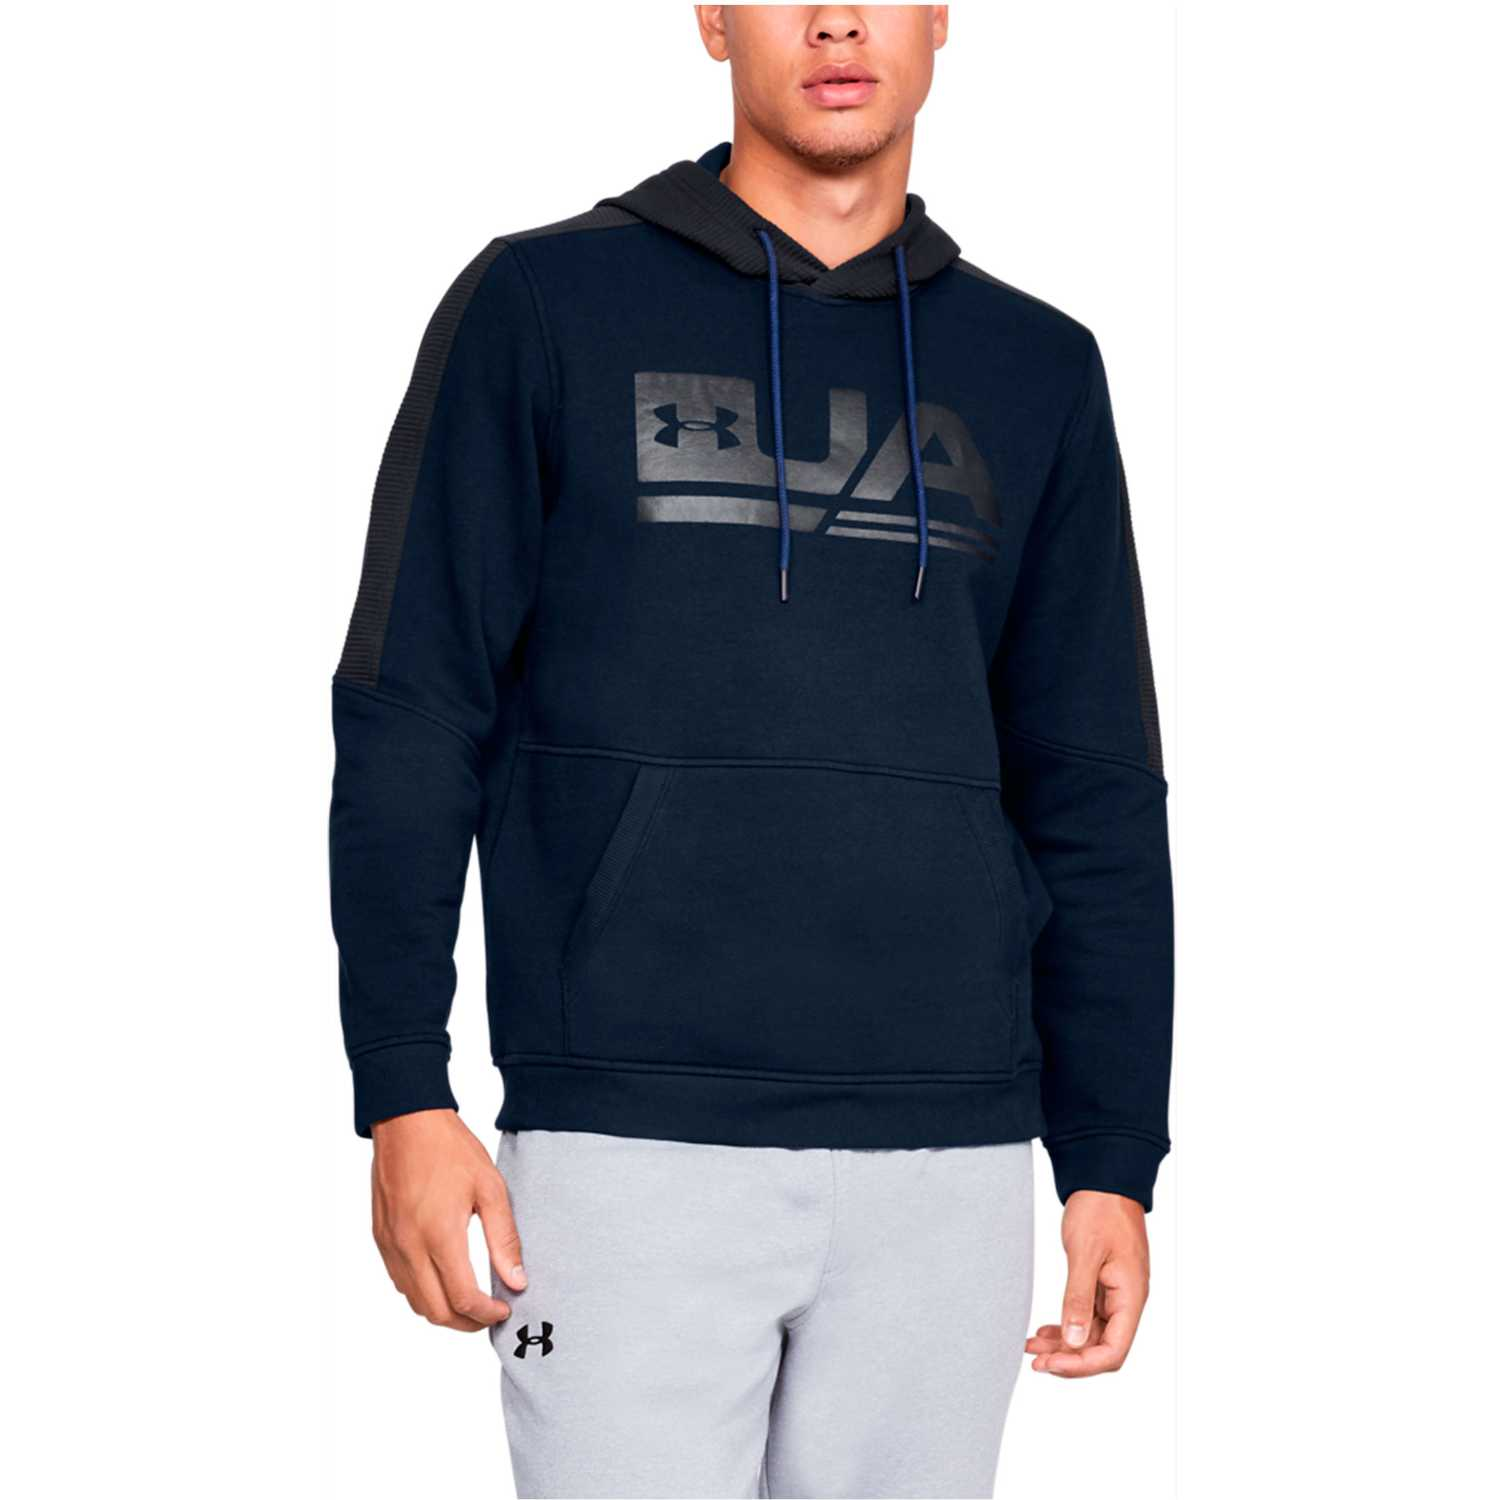 Under Armour microthread fleece graphic-nvy Acero / negro Hoodies Deportivos